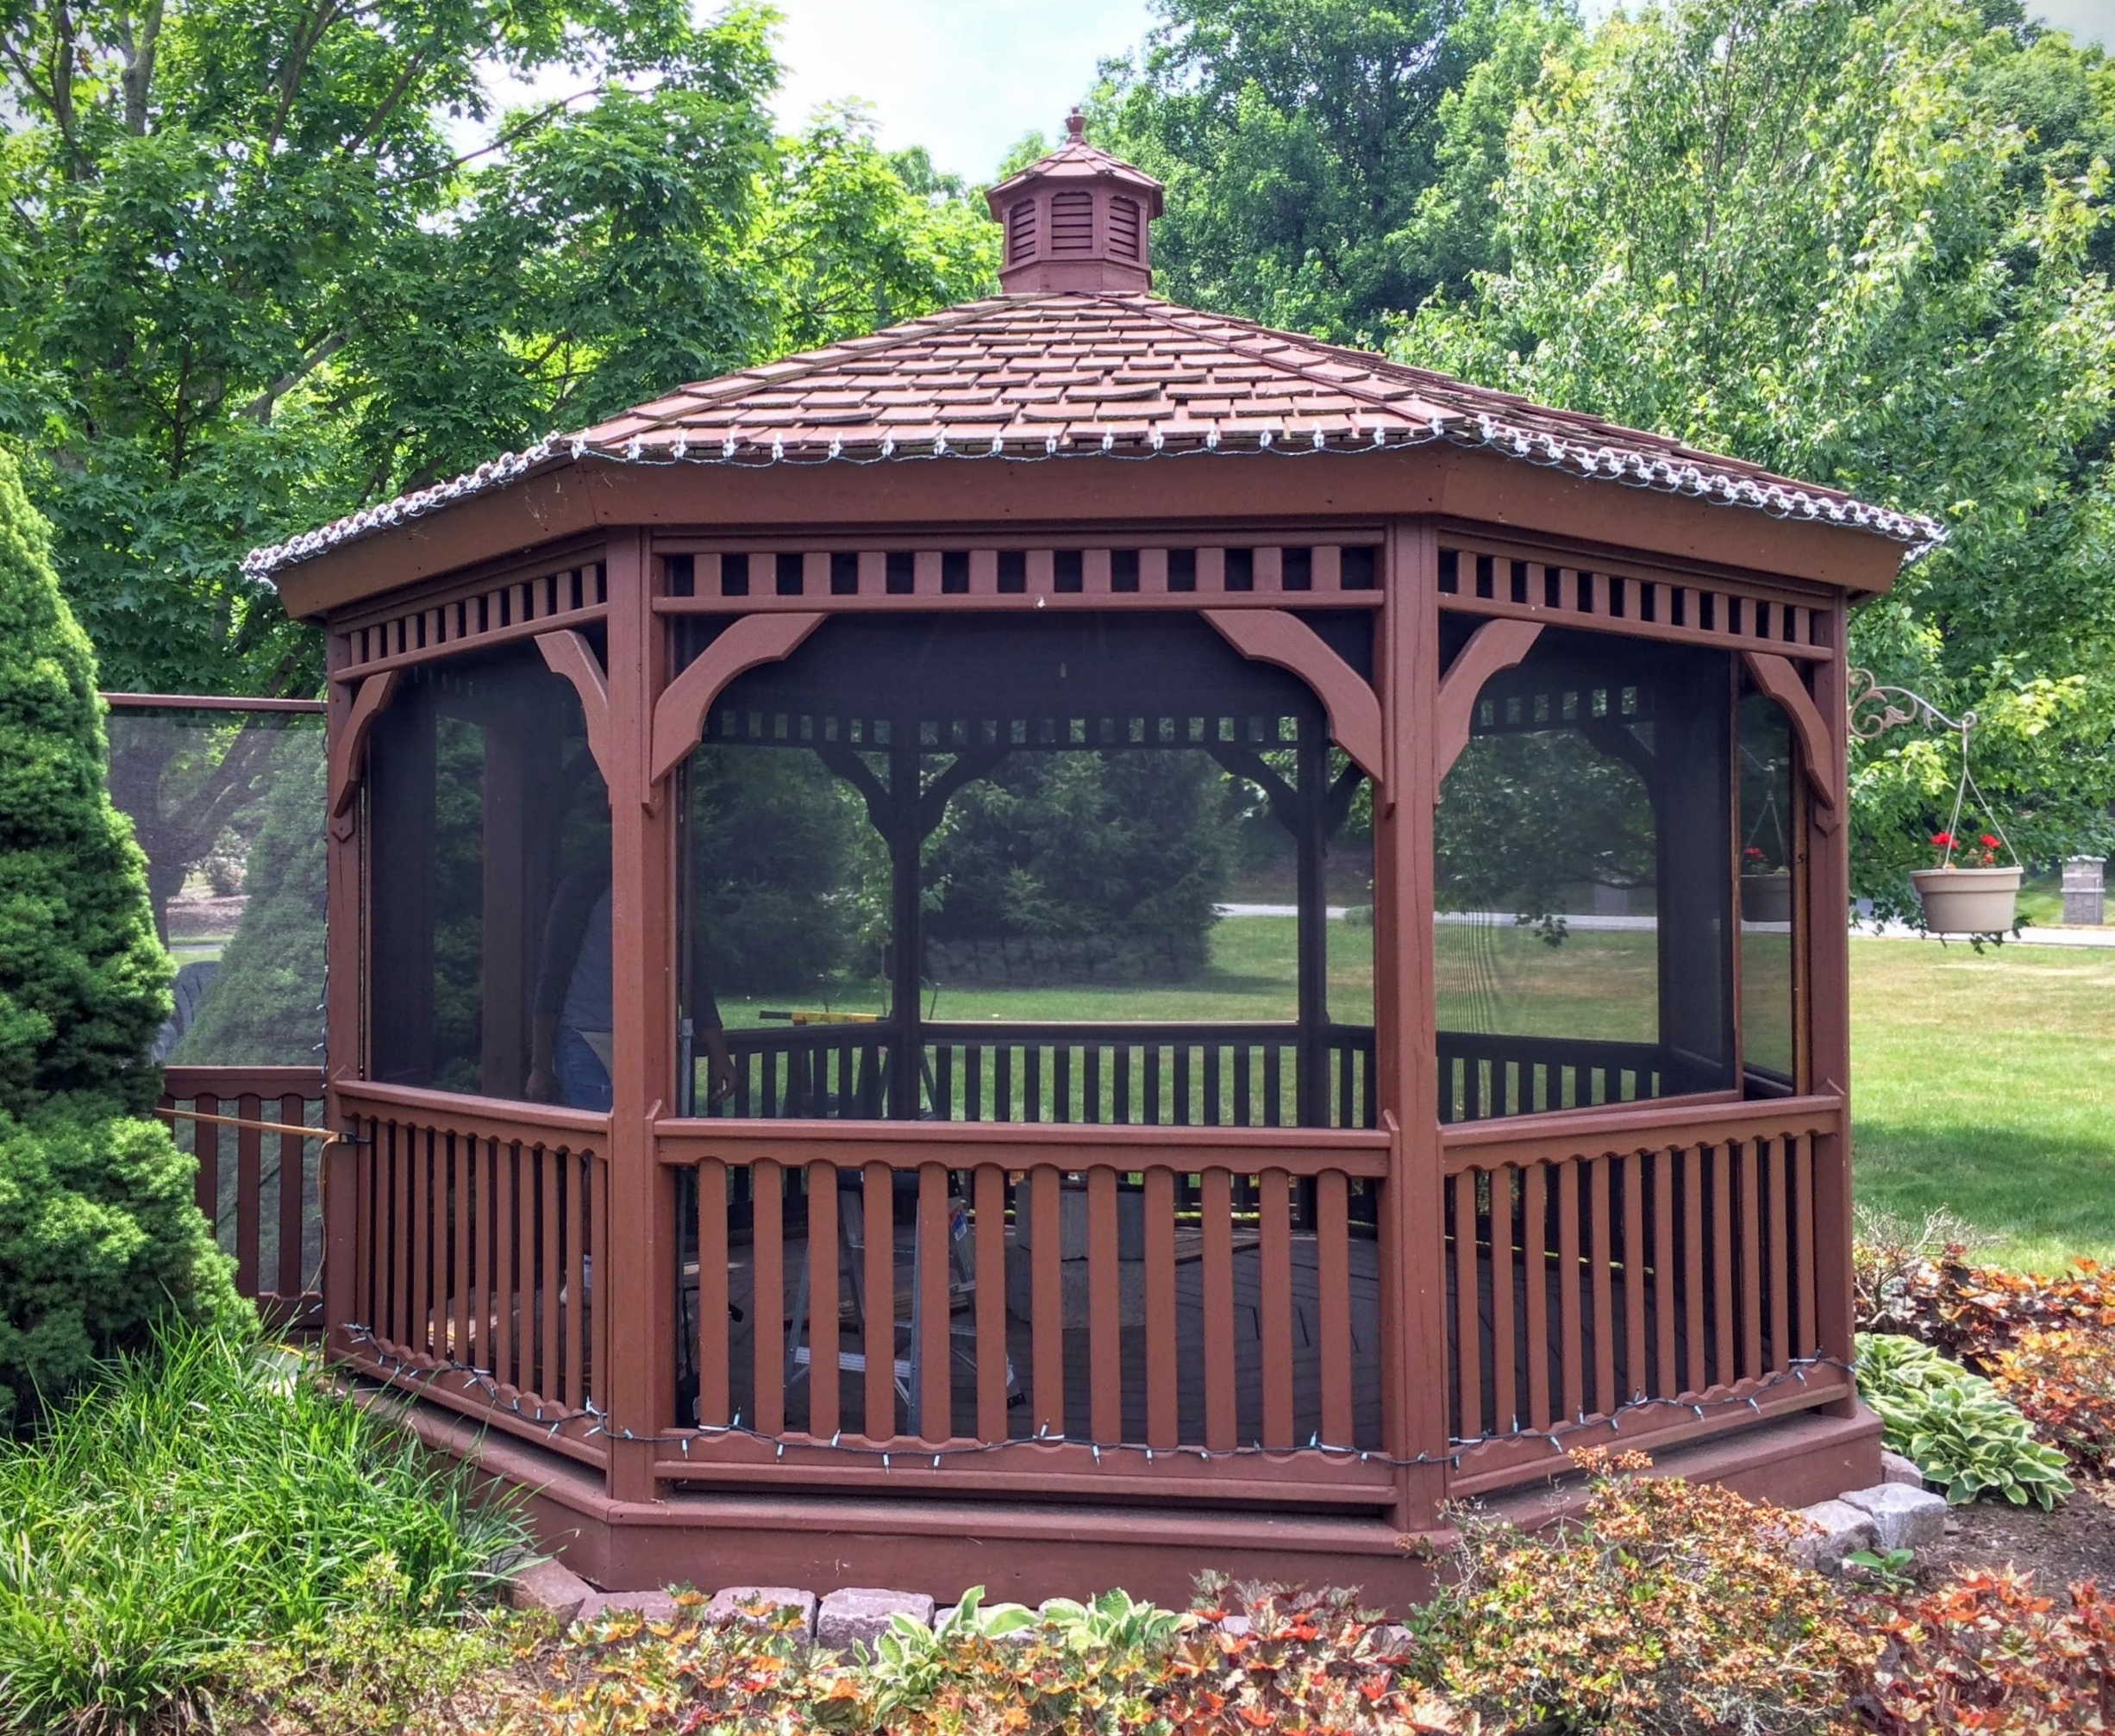 Renue Glass and Screen Repair Garden Gazebo